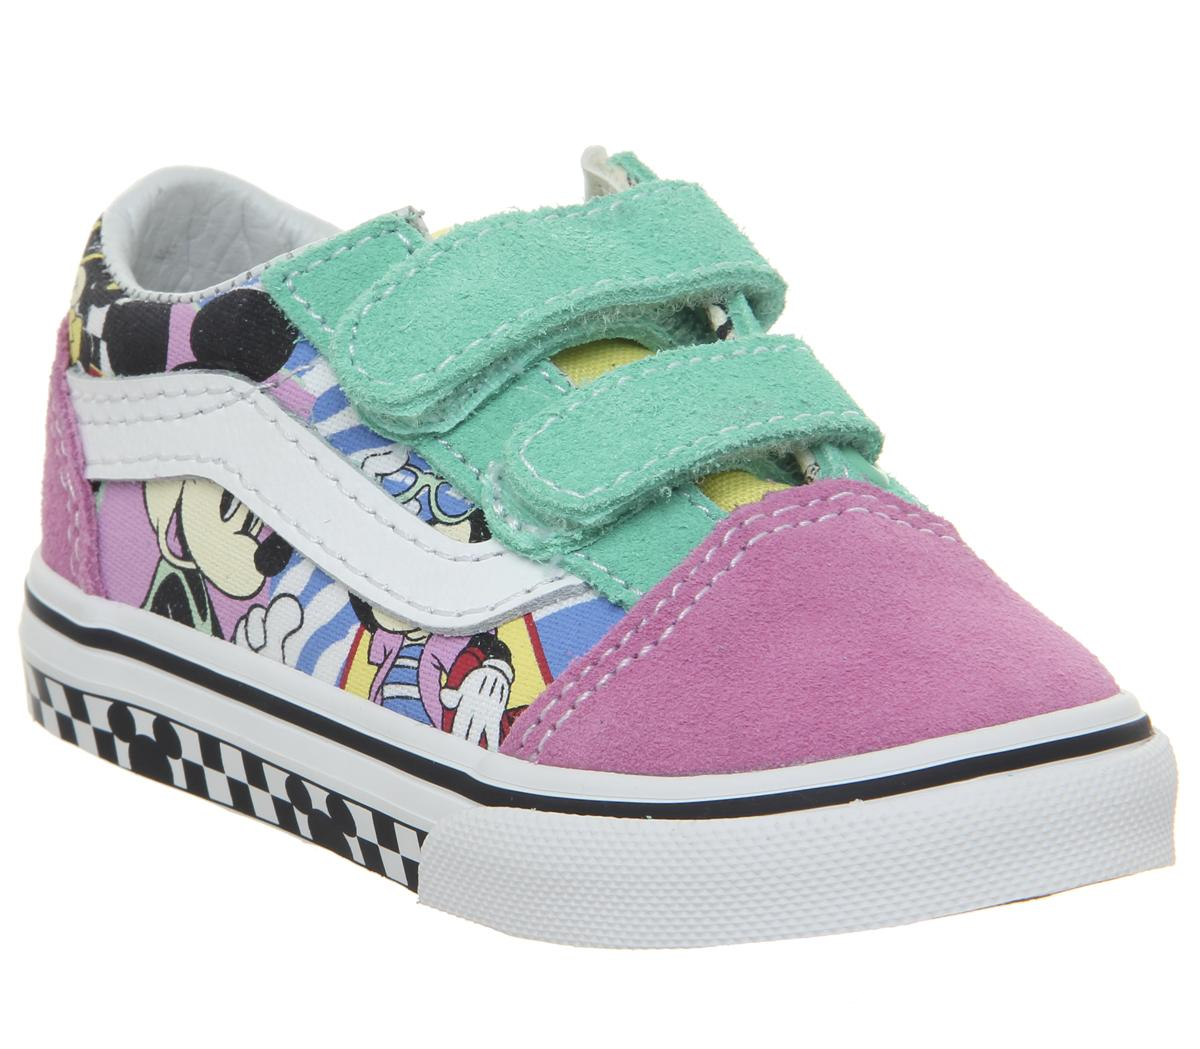 5cdce0a4d2 Vans Old Skool Toddlers Trainers 80s Mickey True White Disney - Unisex